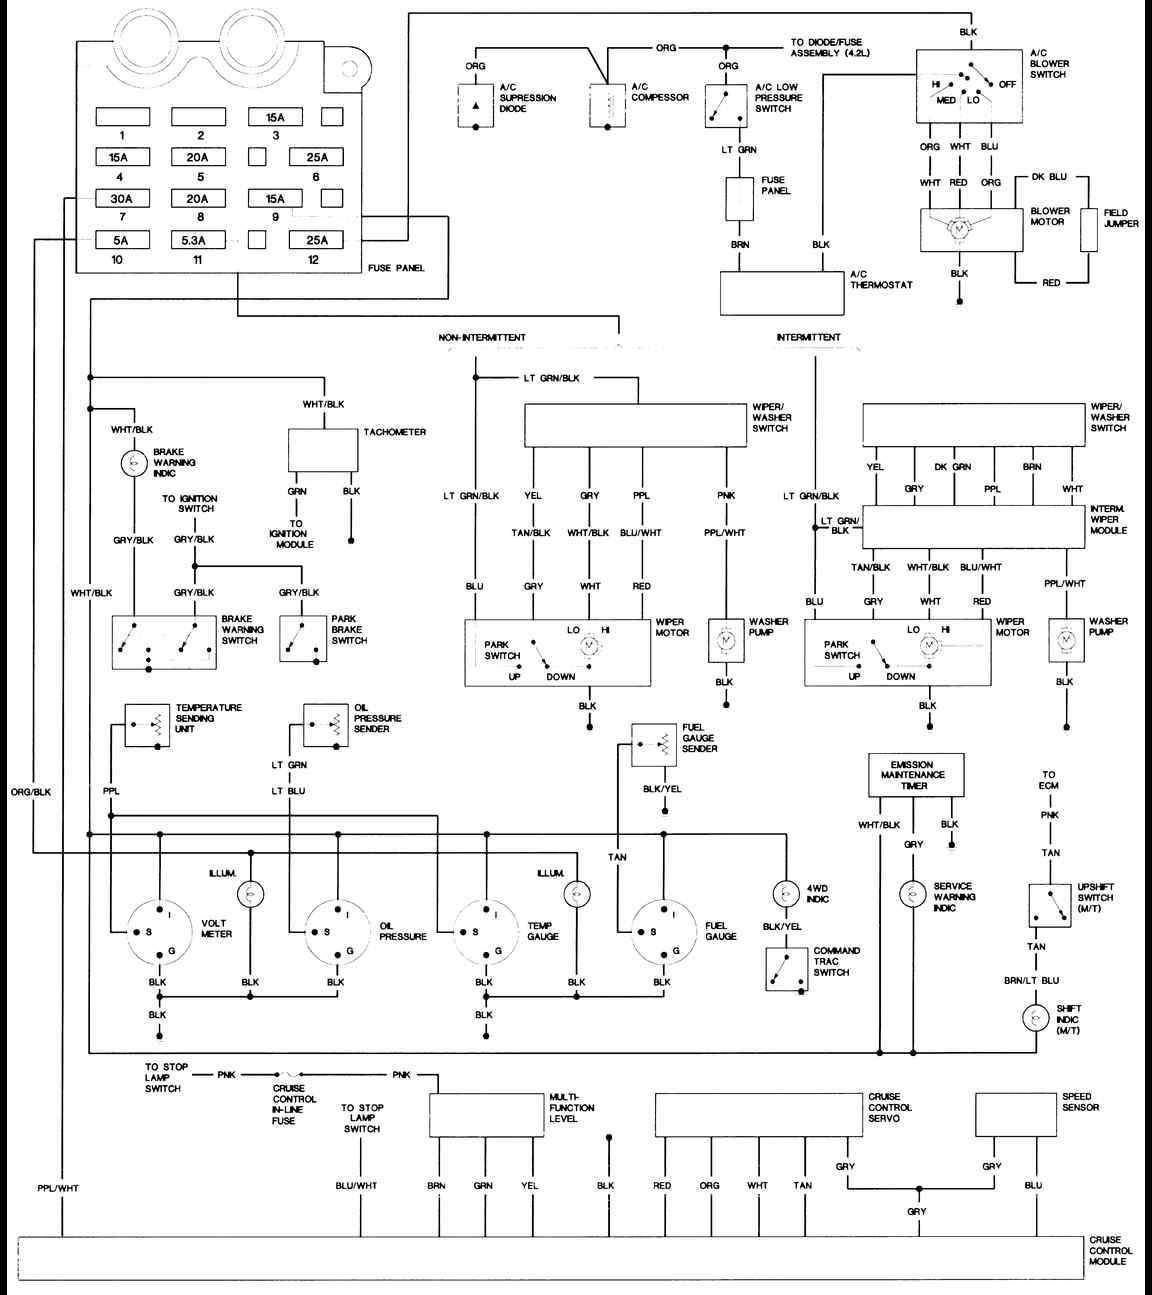 2000 jeep wrangler ignition wiring diagram 95 240sx headlight 89 cherokee switch location get free image